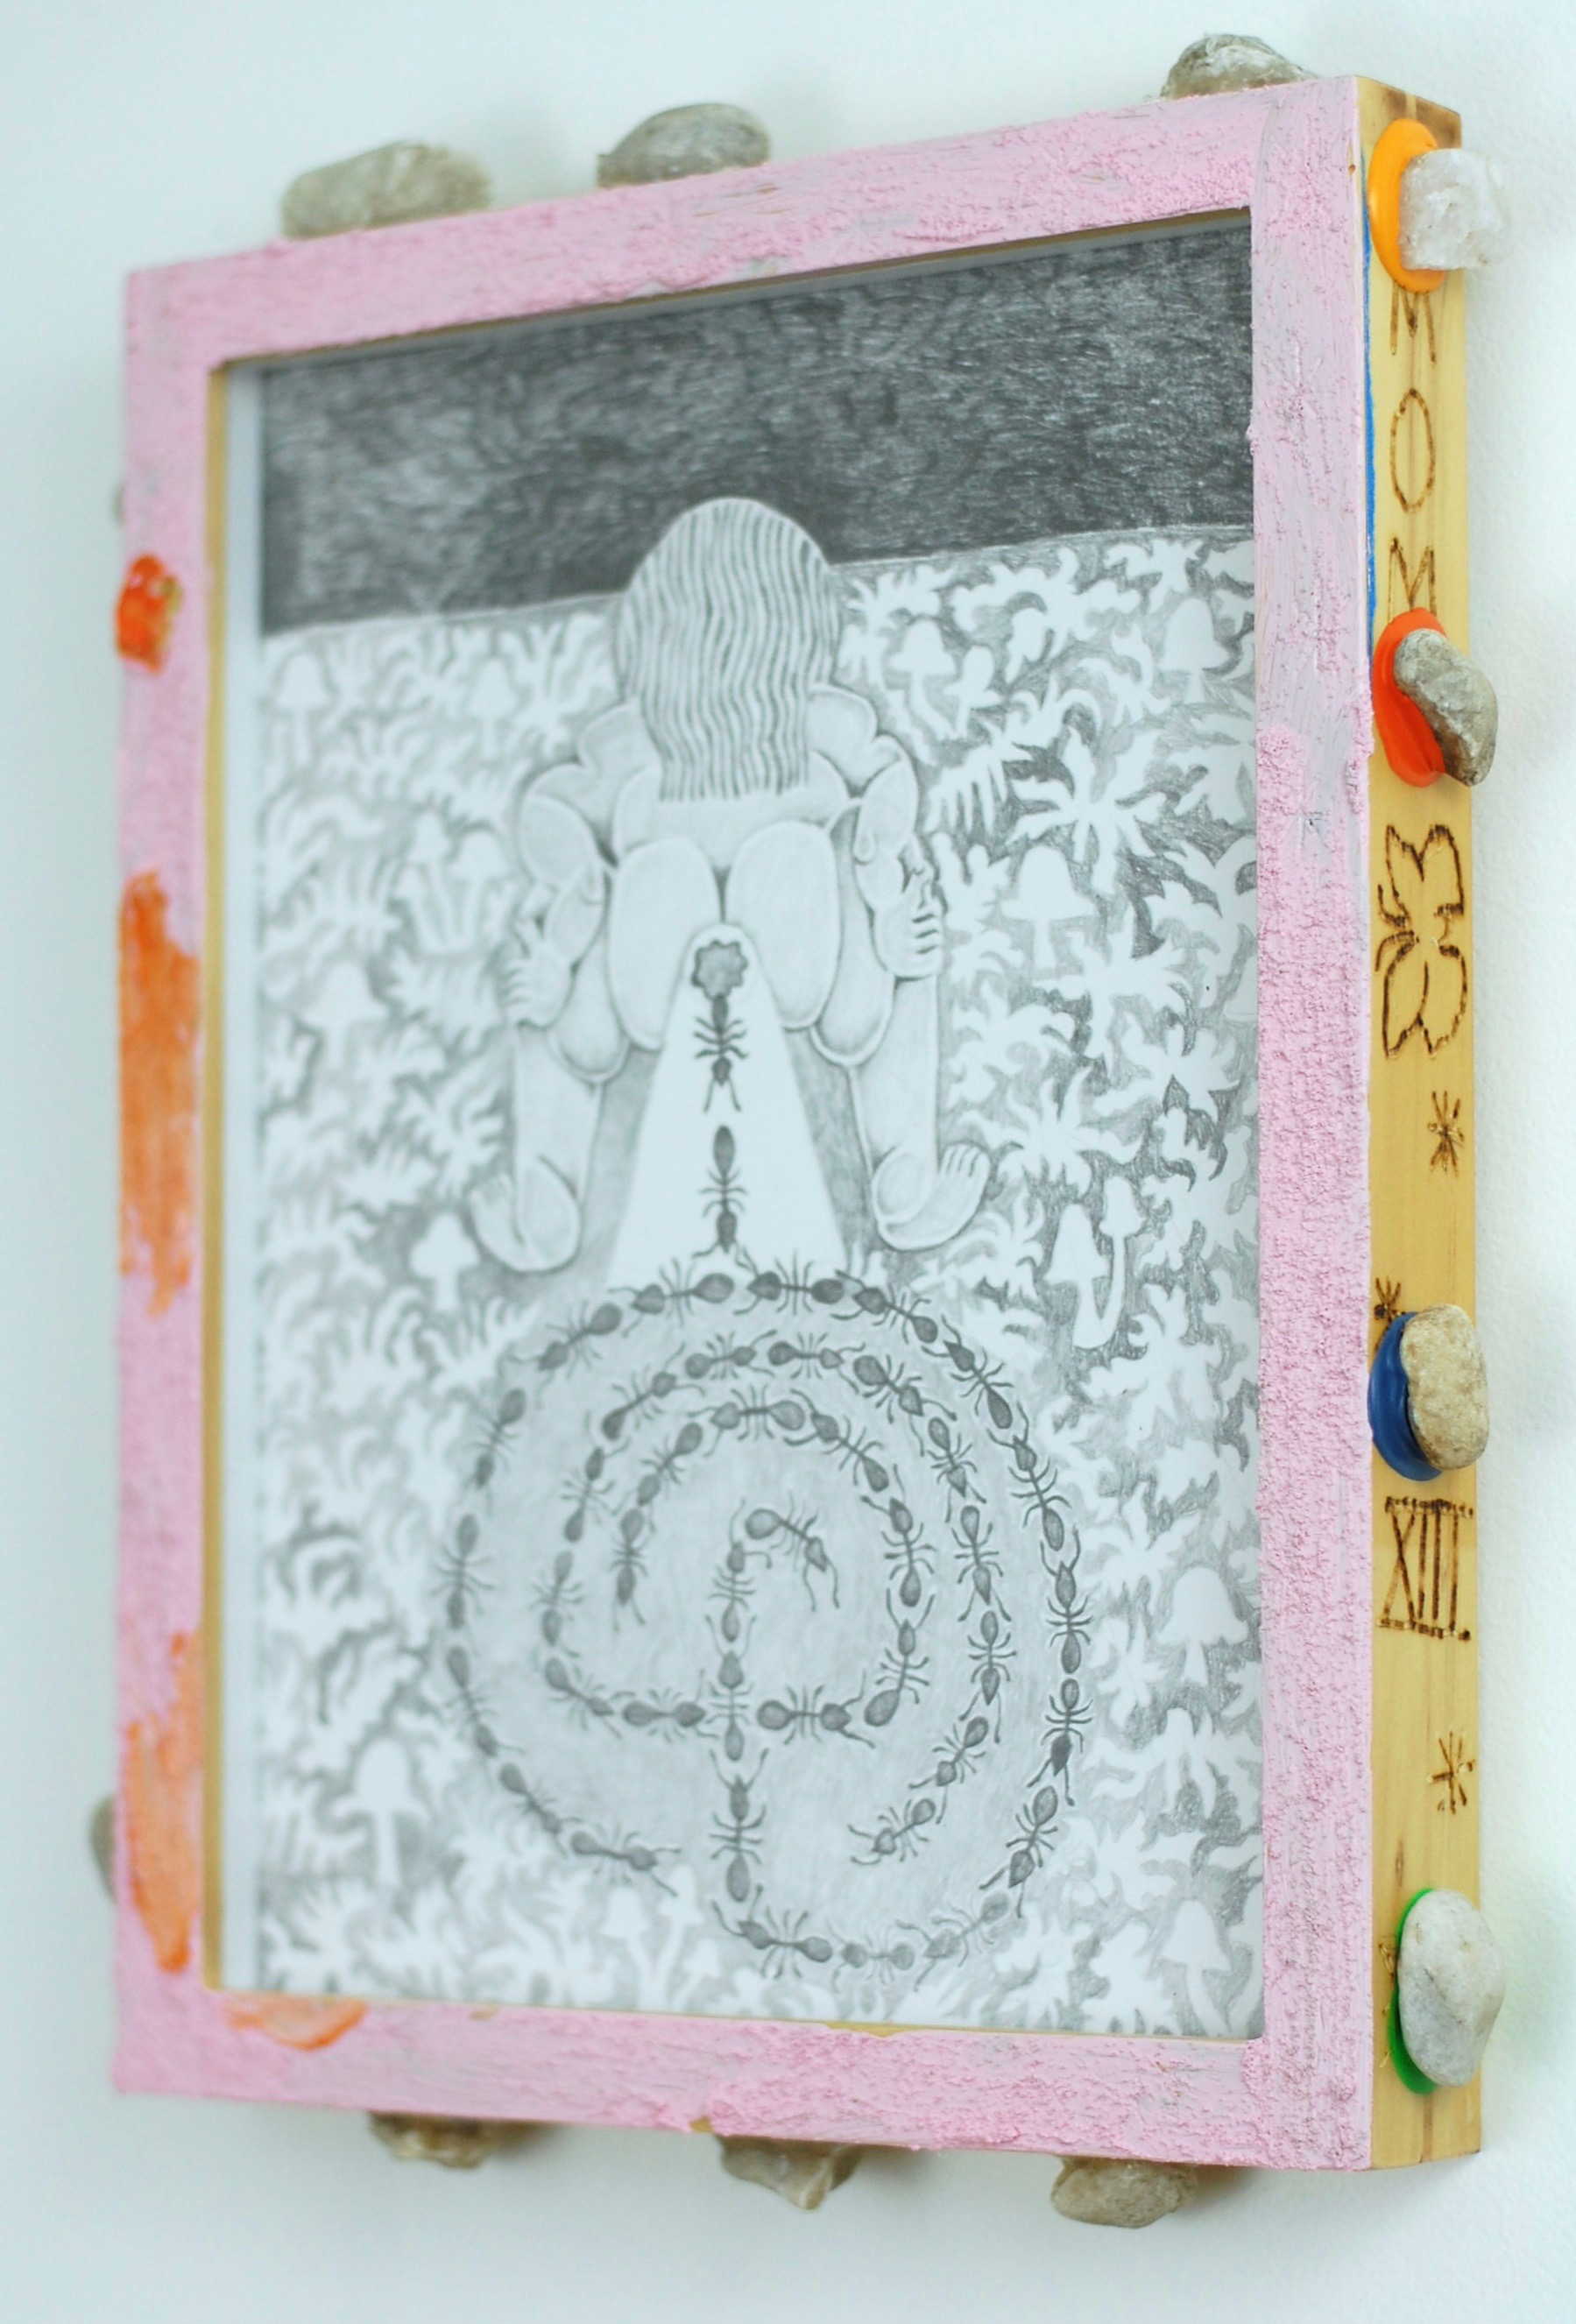 I walked the walls and not the labyrinth . 2018. Graphite on paper with acrylic, pumice, pebbles from back yard, and heat carving on wooden frame. 9x12in.